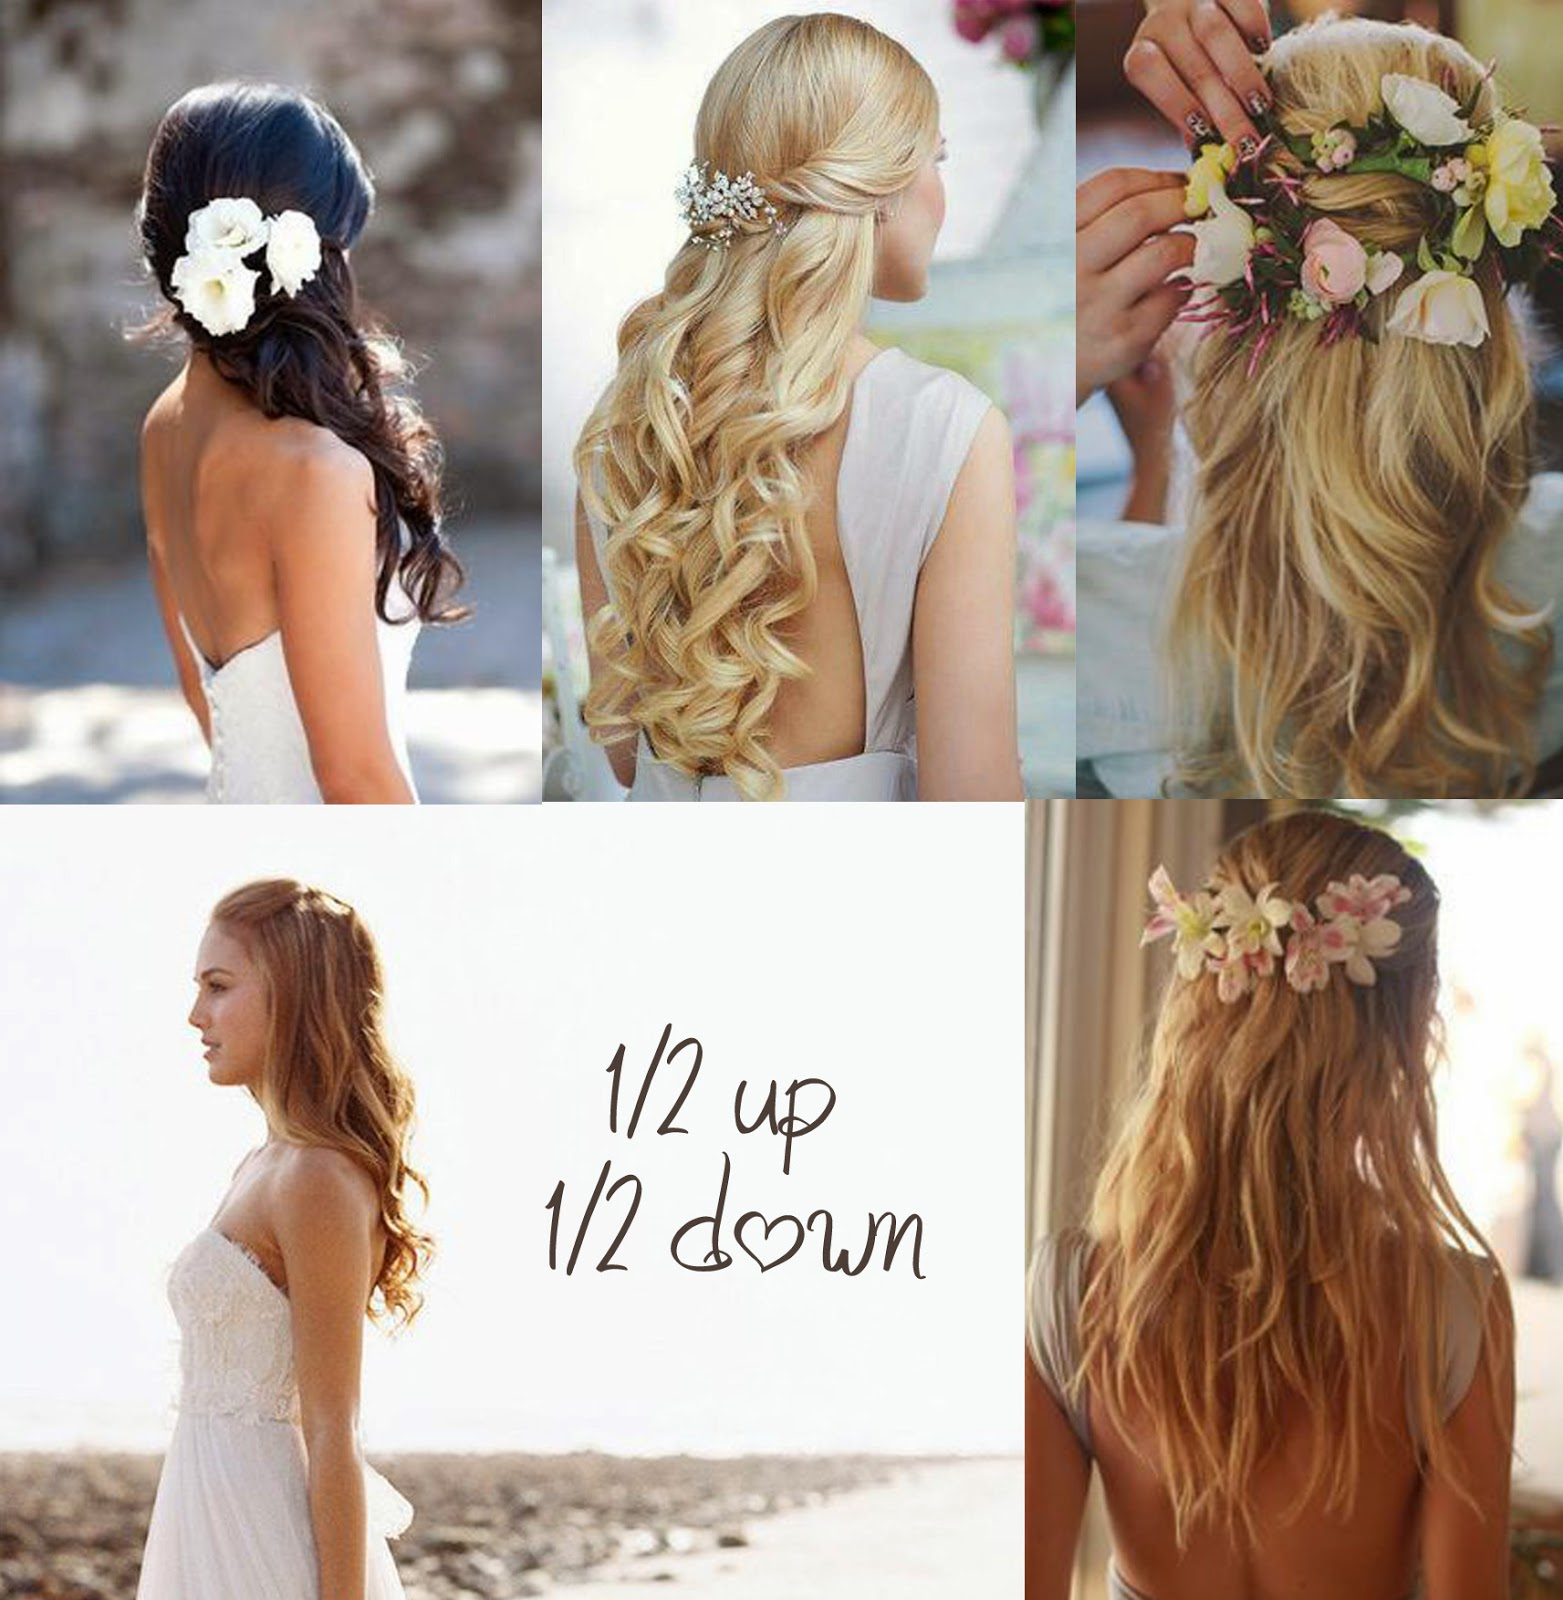 natasha wedding essentials: summer beach wedding ideas (hair and